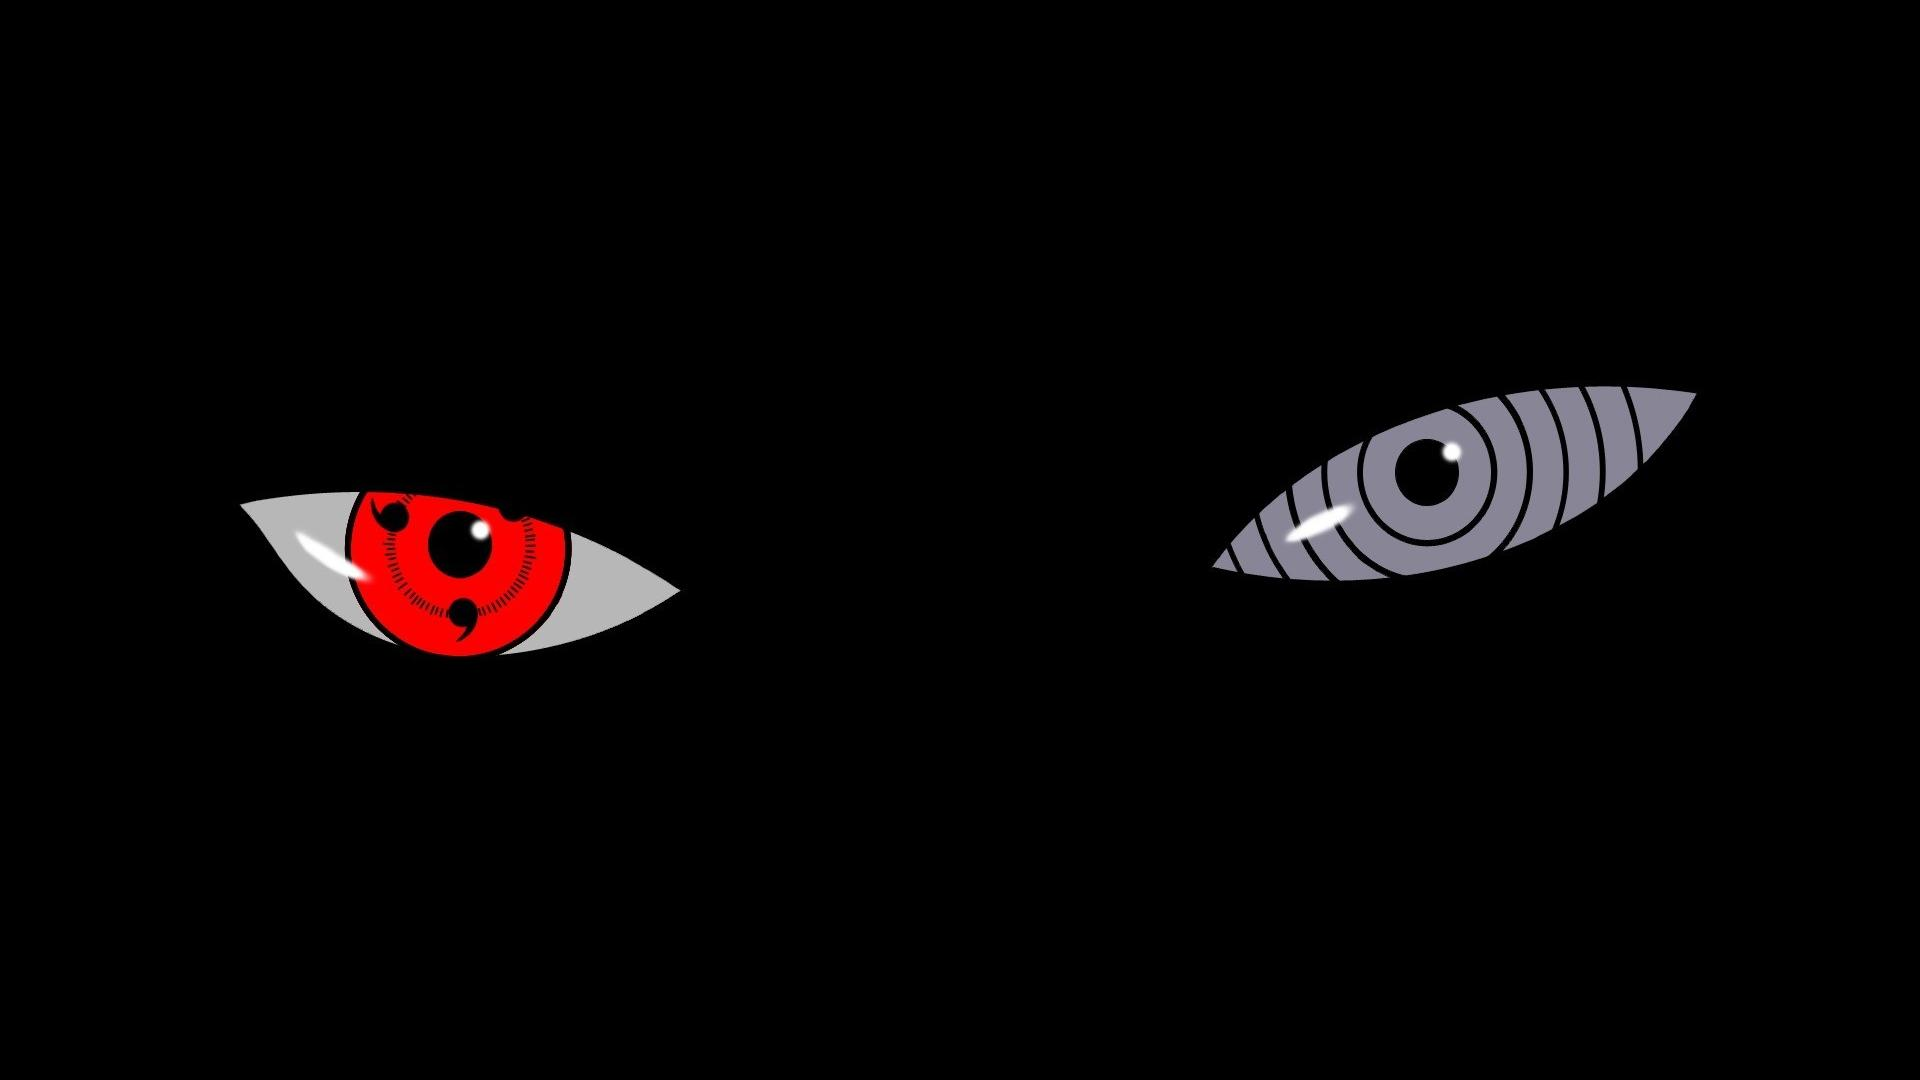 Download Sharingan Hd Wallpaper Hd Backgrounds Download